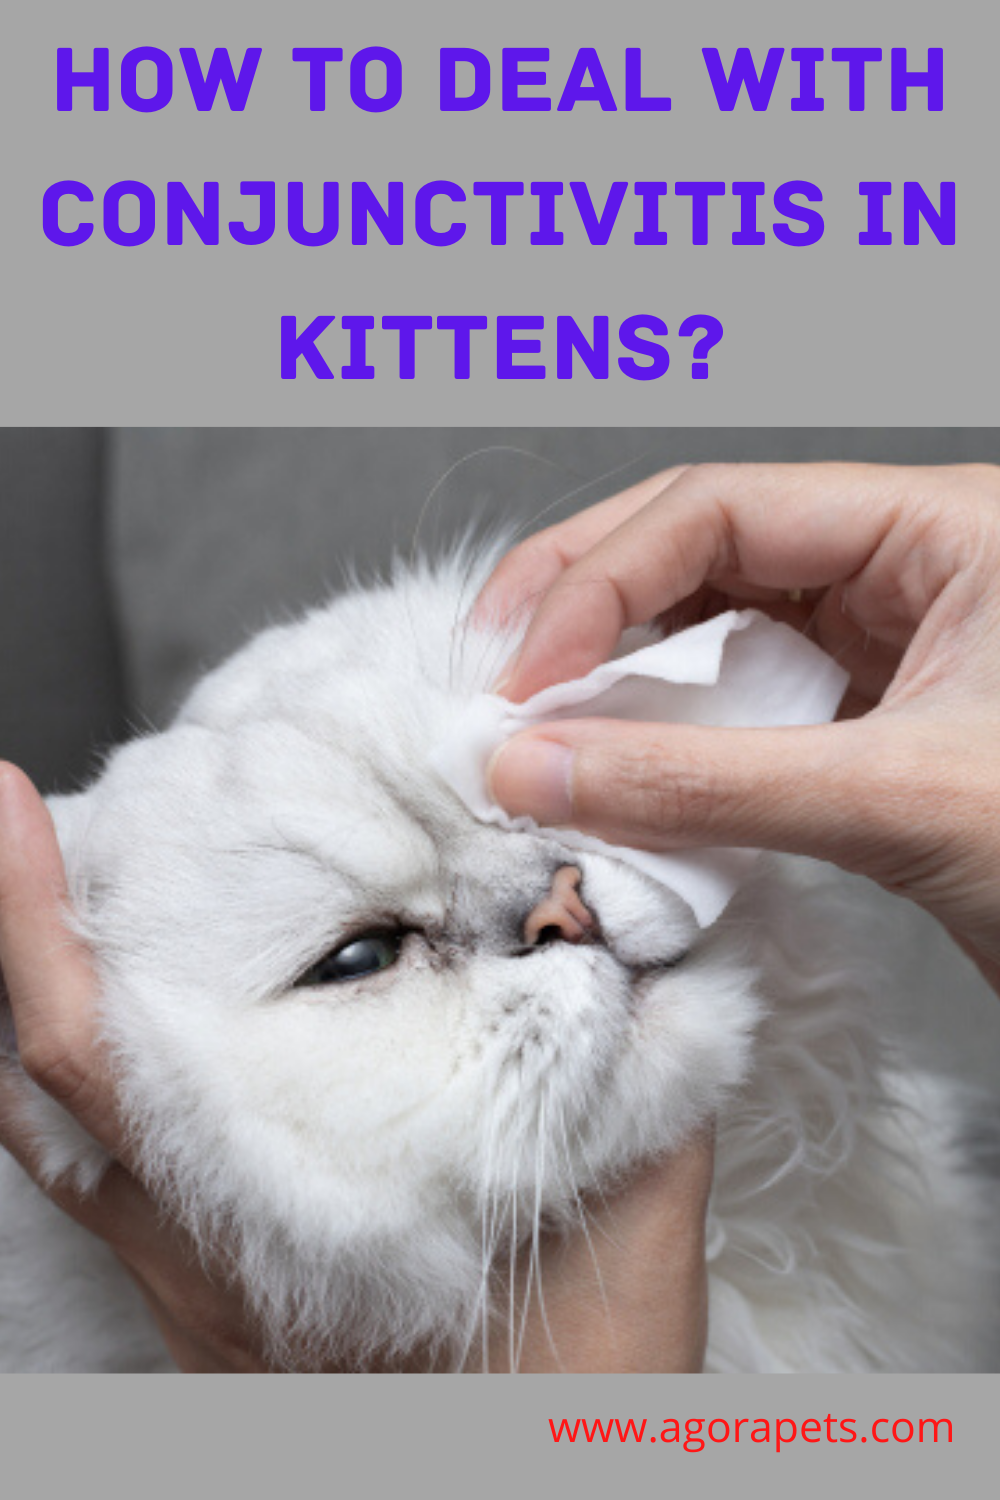 How To Deal With Conjunctivitis In Kittens In 2020 Kitten Eyes Conjunctivitis Treatment For Conjunctivitis